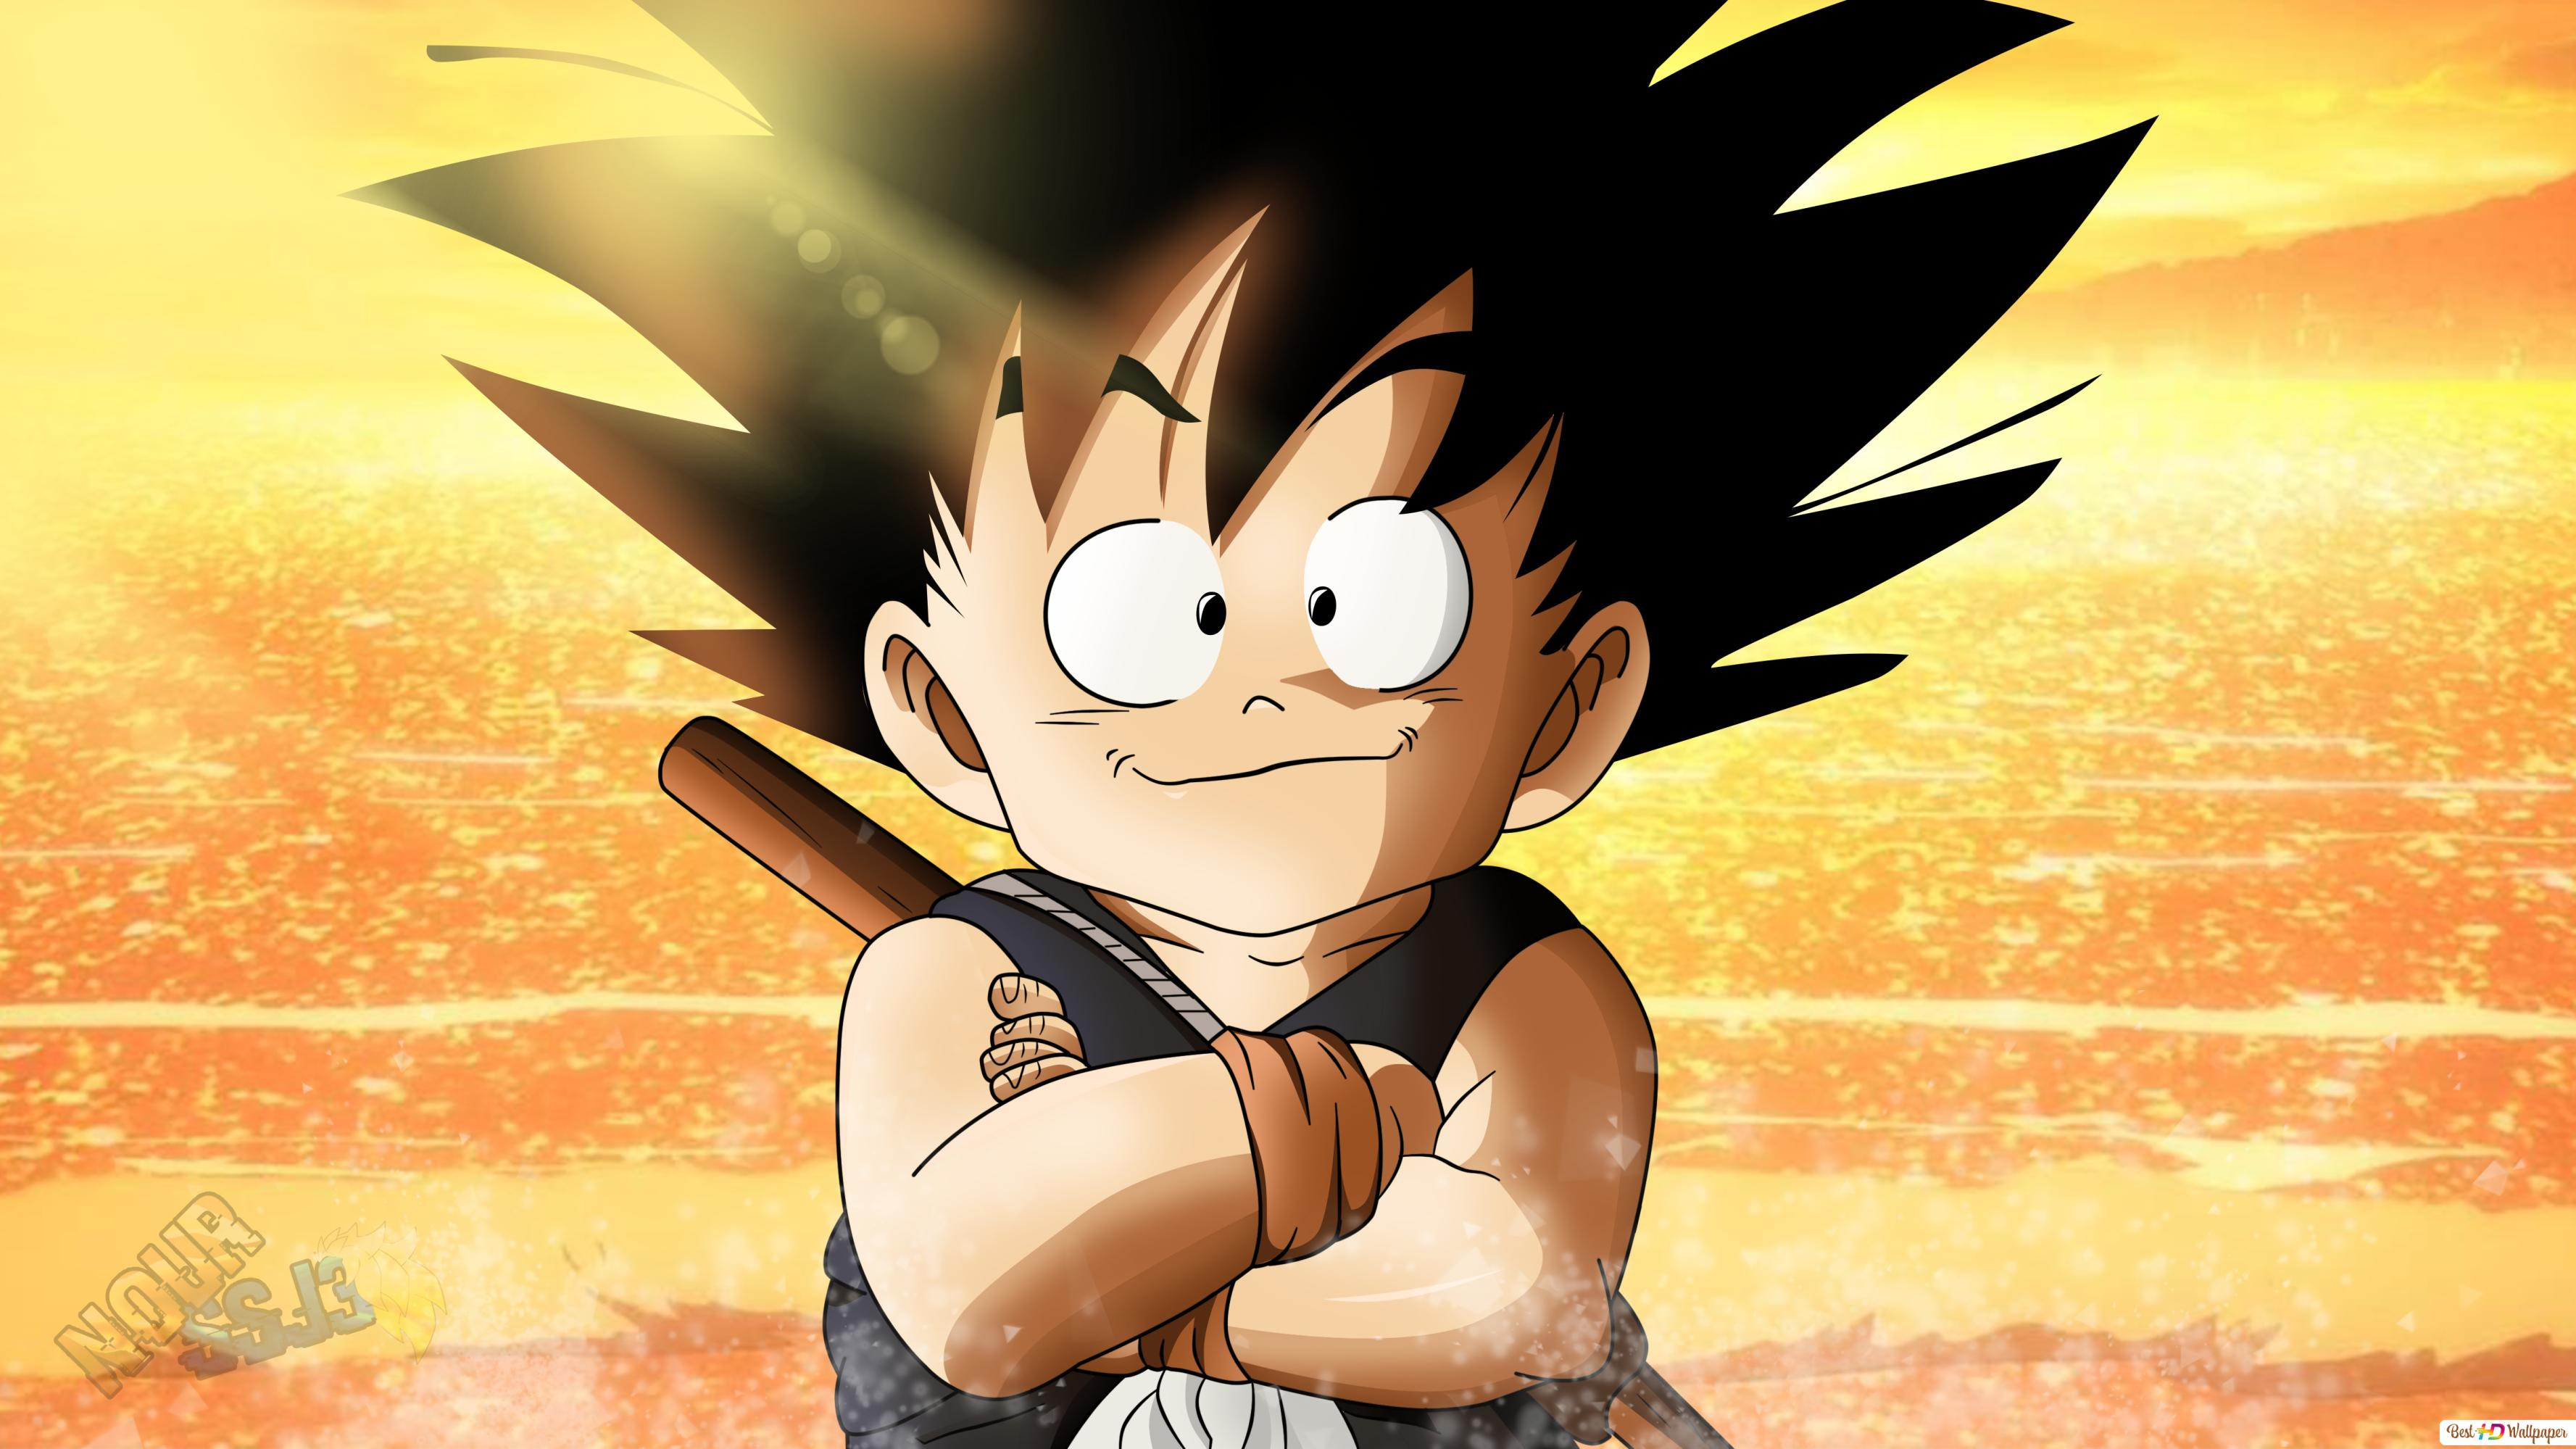 Dragon Ball Z Kid Goku Sea Sunset Hd Wallpaper Download